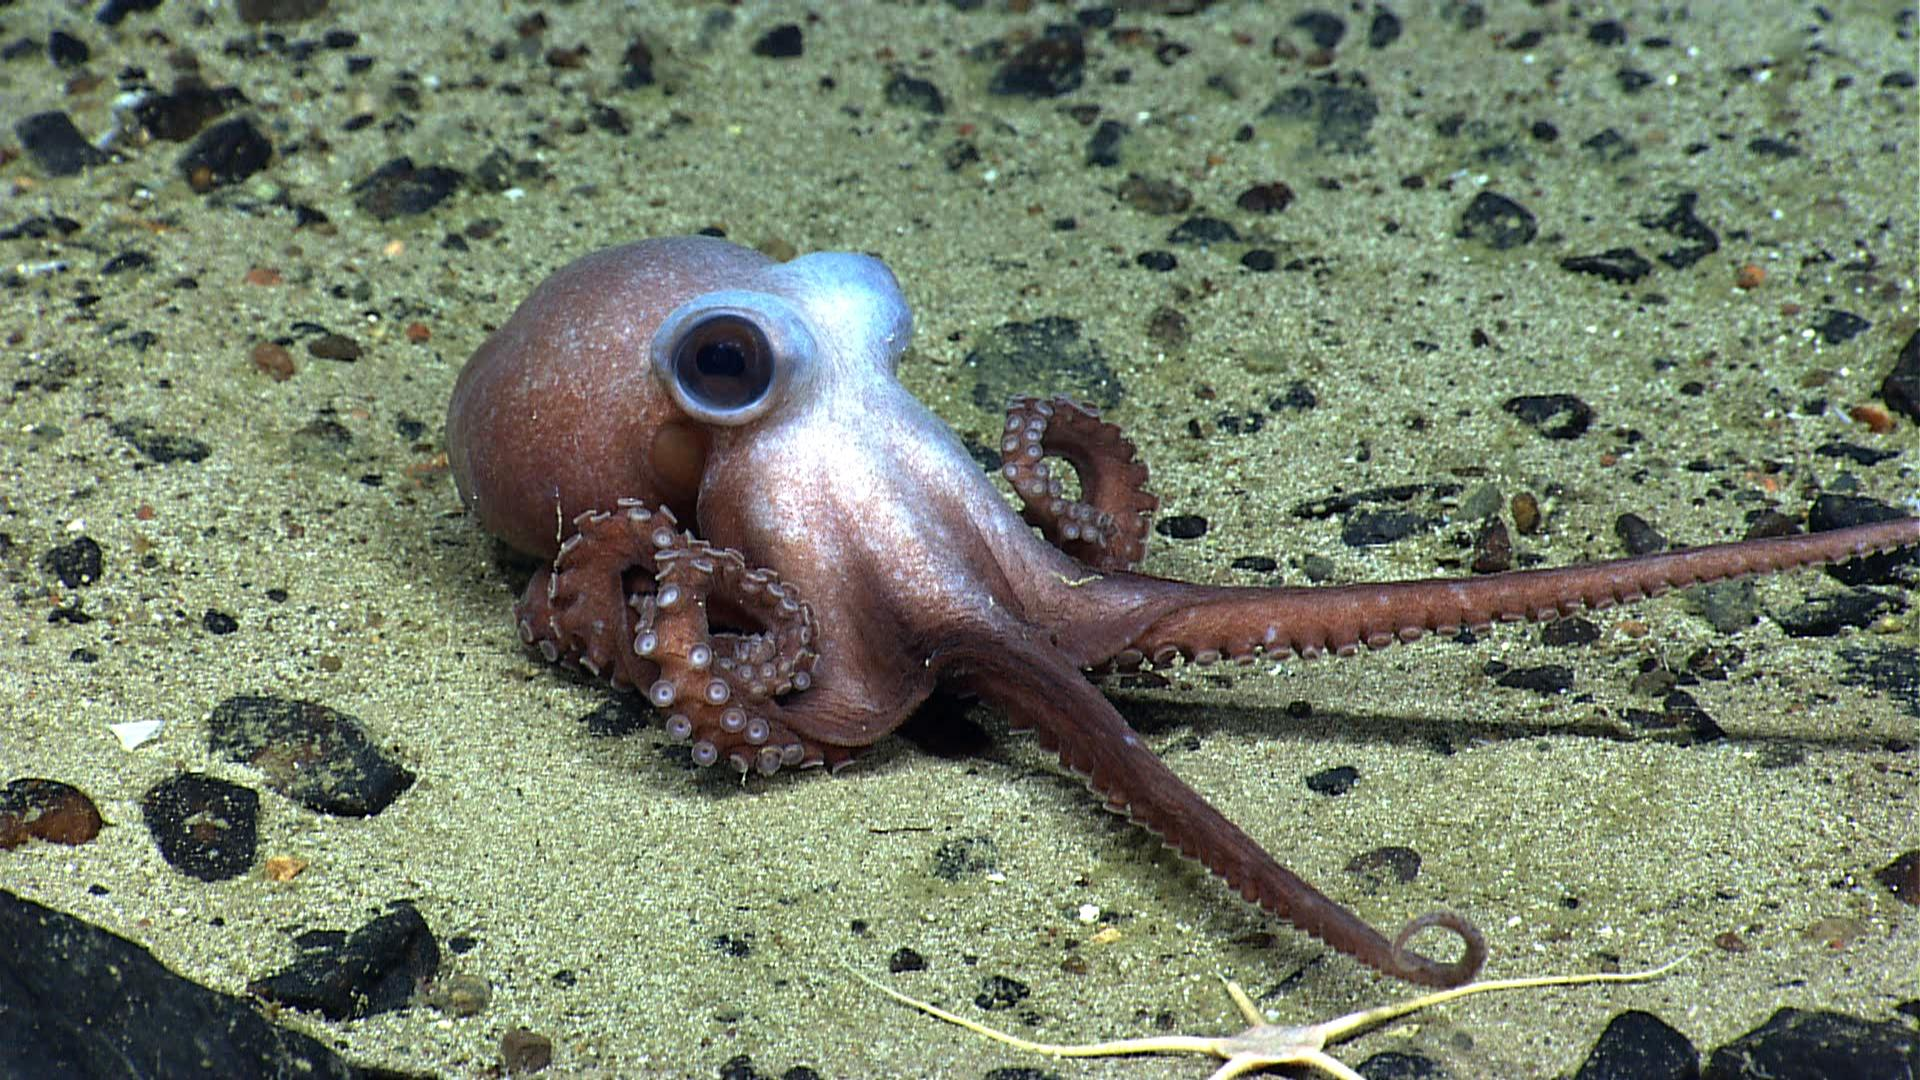 <p><span>An octopus stretches its tentacles on Physalia Seamount. This animal is a predator like all octopus and squid species and feeds on fish and invertebrates on the seamount. Little detail is known about the lives of many deep-sea creatures. (Photo: NOAA Okeanos Explorer Program, 2013 Northeast U.S. Canyons Expedition Science Team)</span> </p>